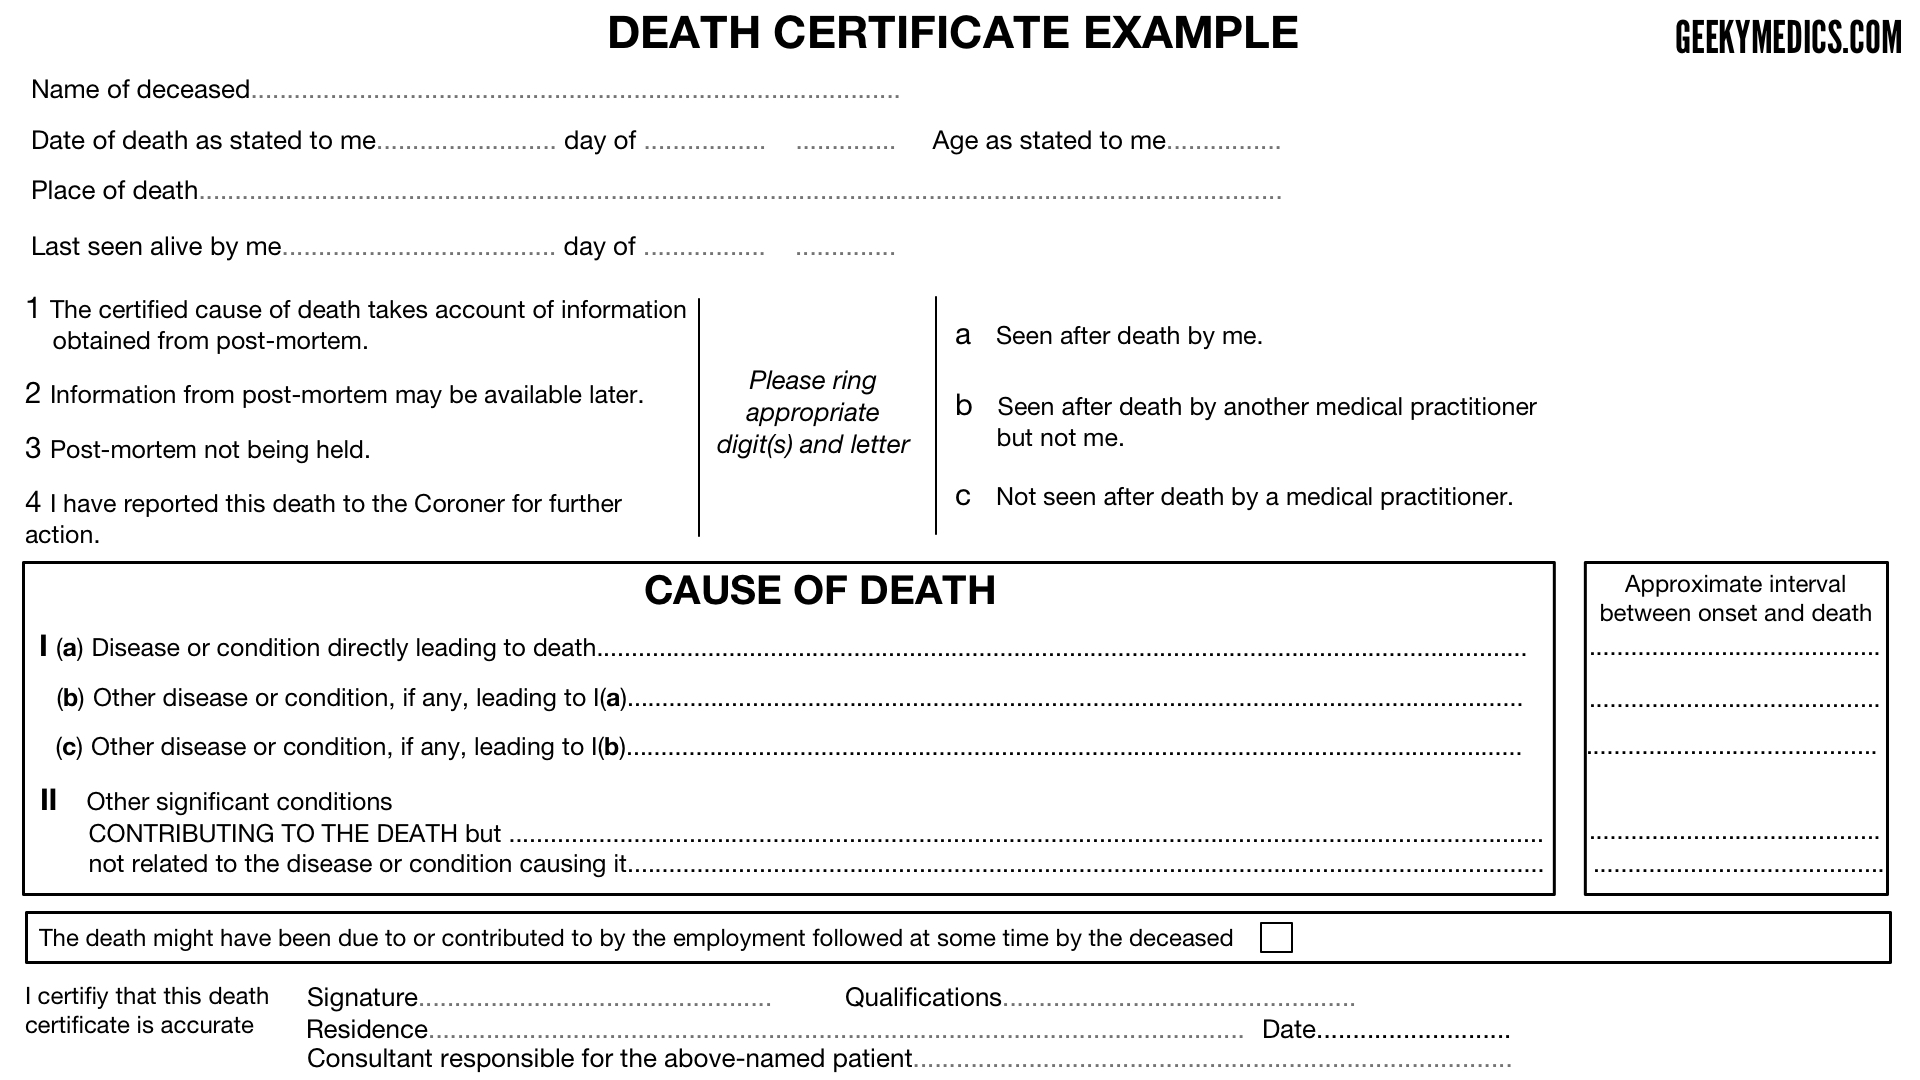 Death Certificate Template. Death Certificate Sample Sample Death ...